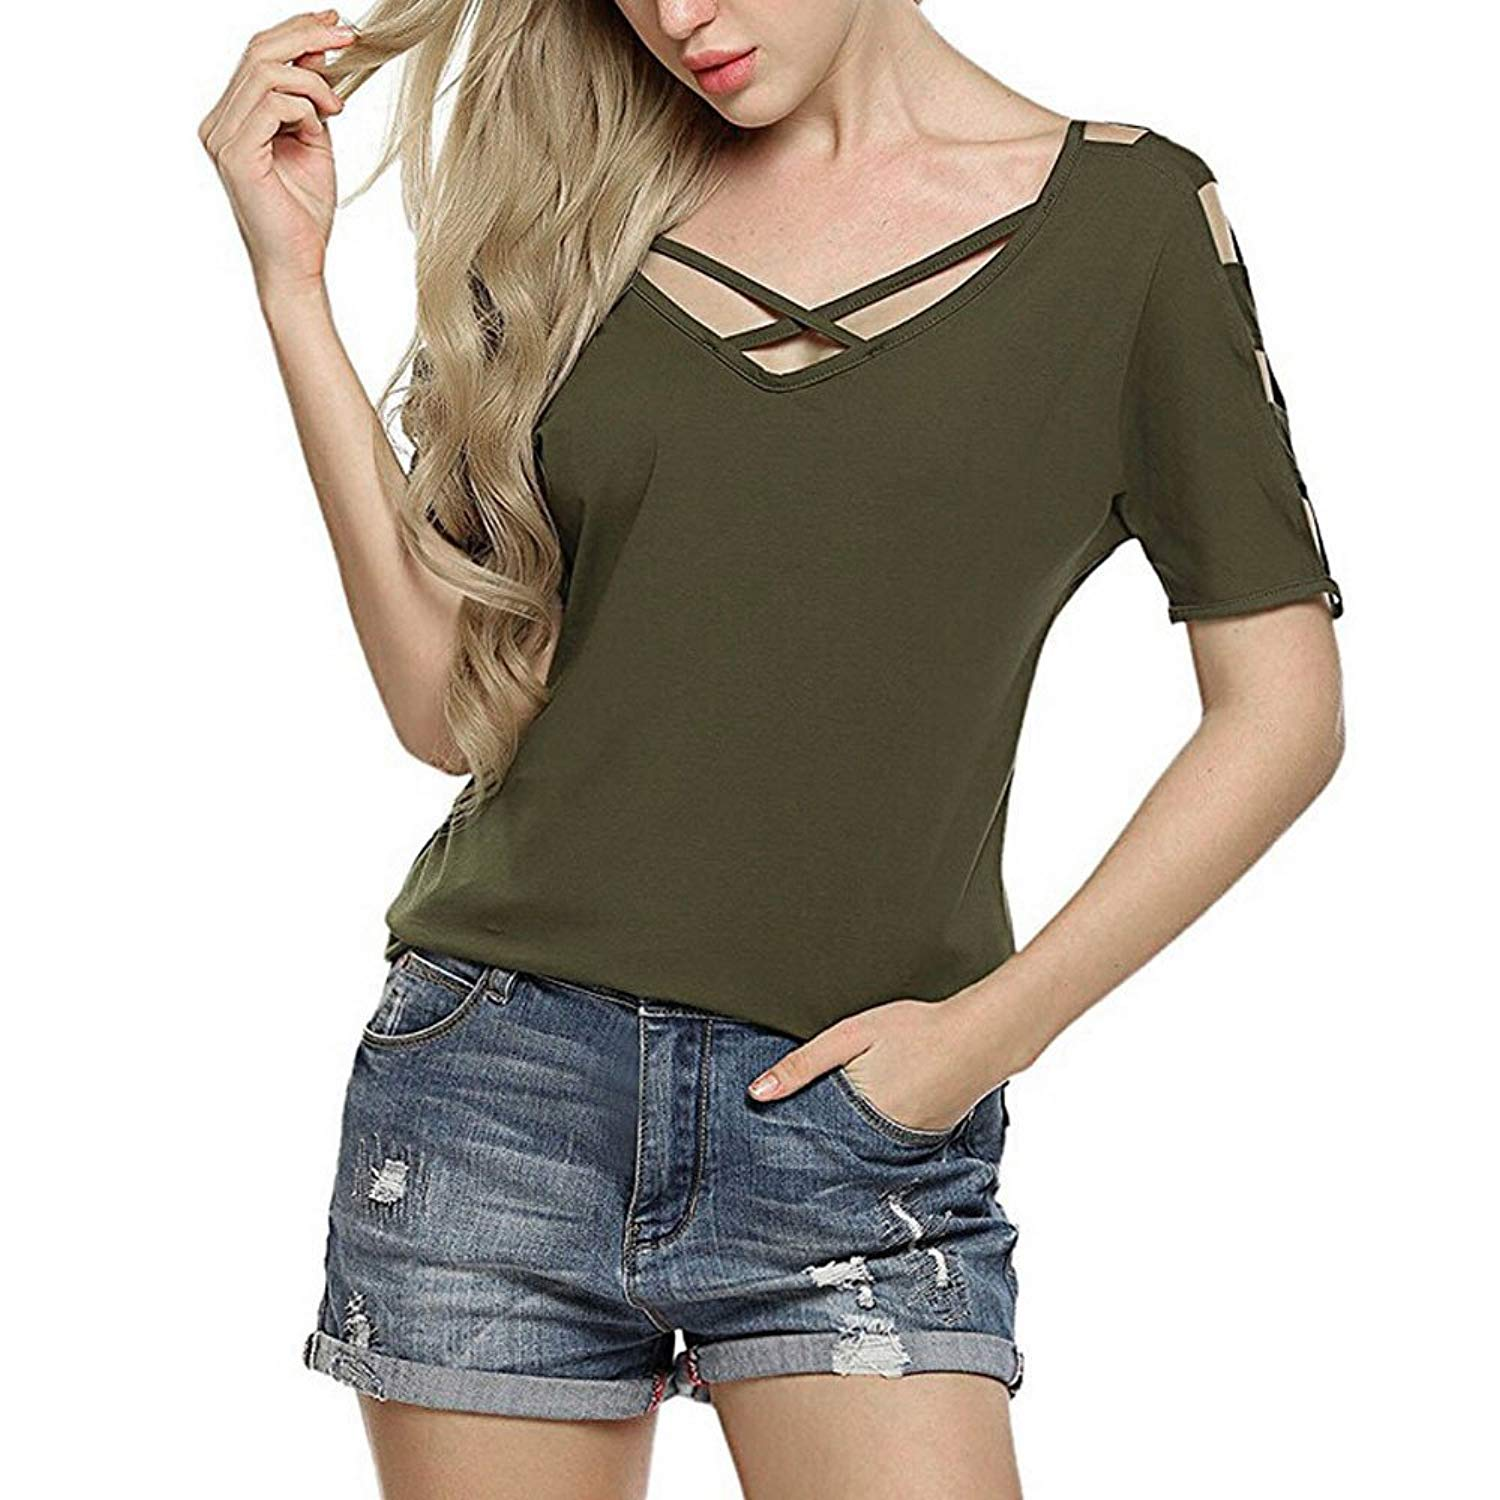 c4b333a5b7be0 Get Quotations · Clearance Women Casual Short Sleeve Cross Front Cut Out  Shoulder Loose Blouse Tops Shirts Teen Girls